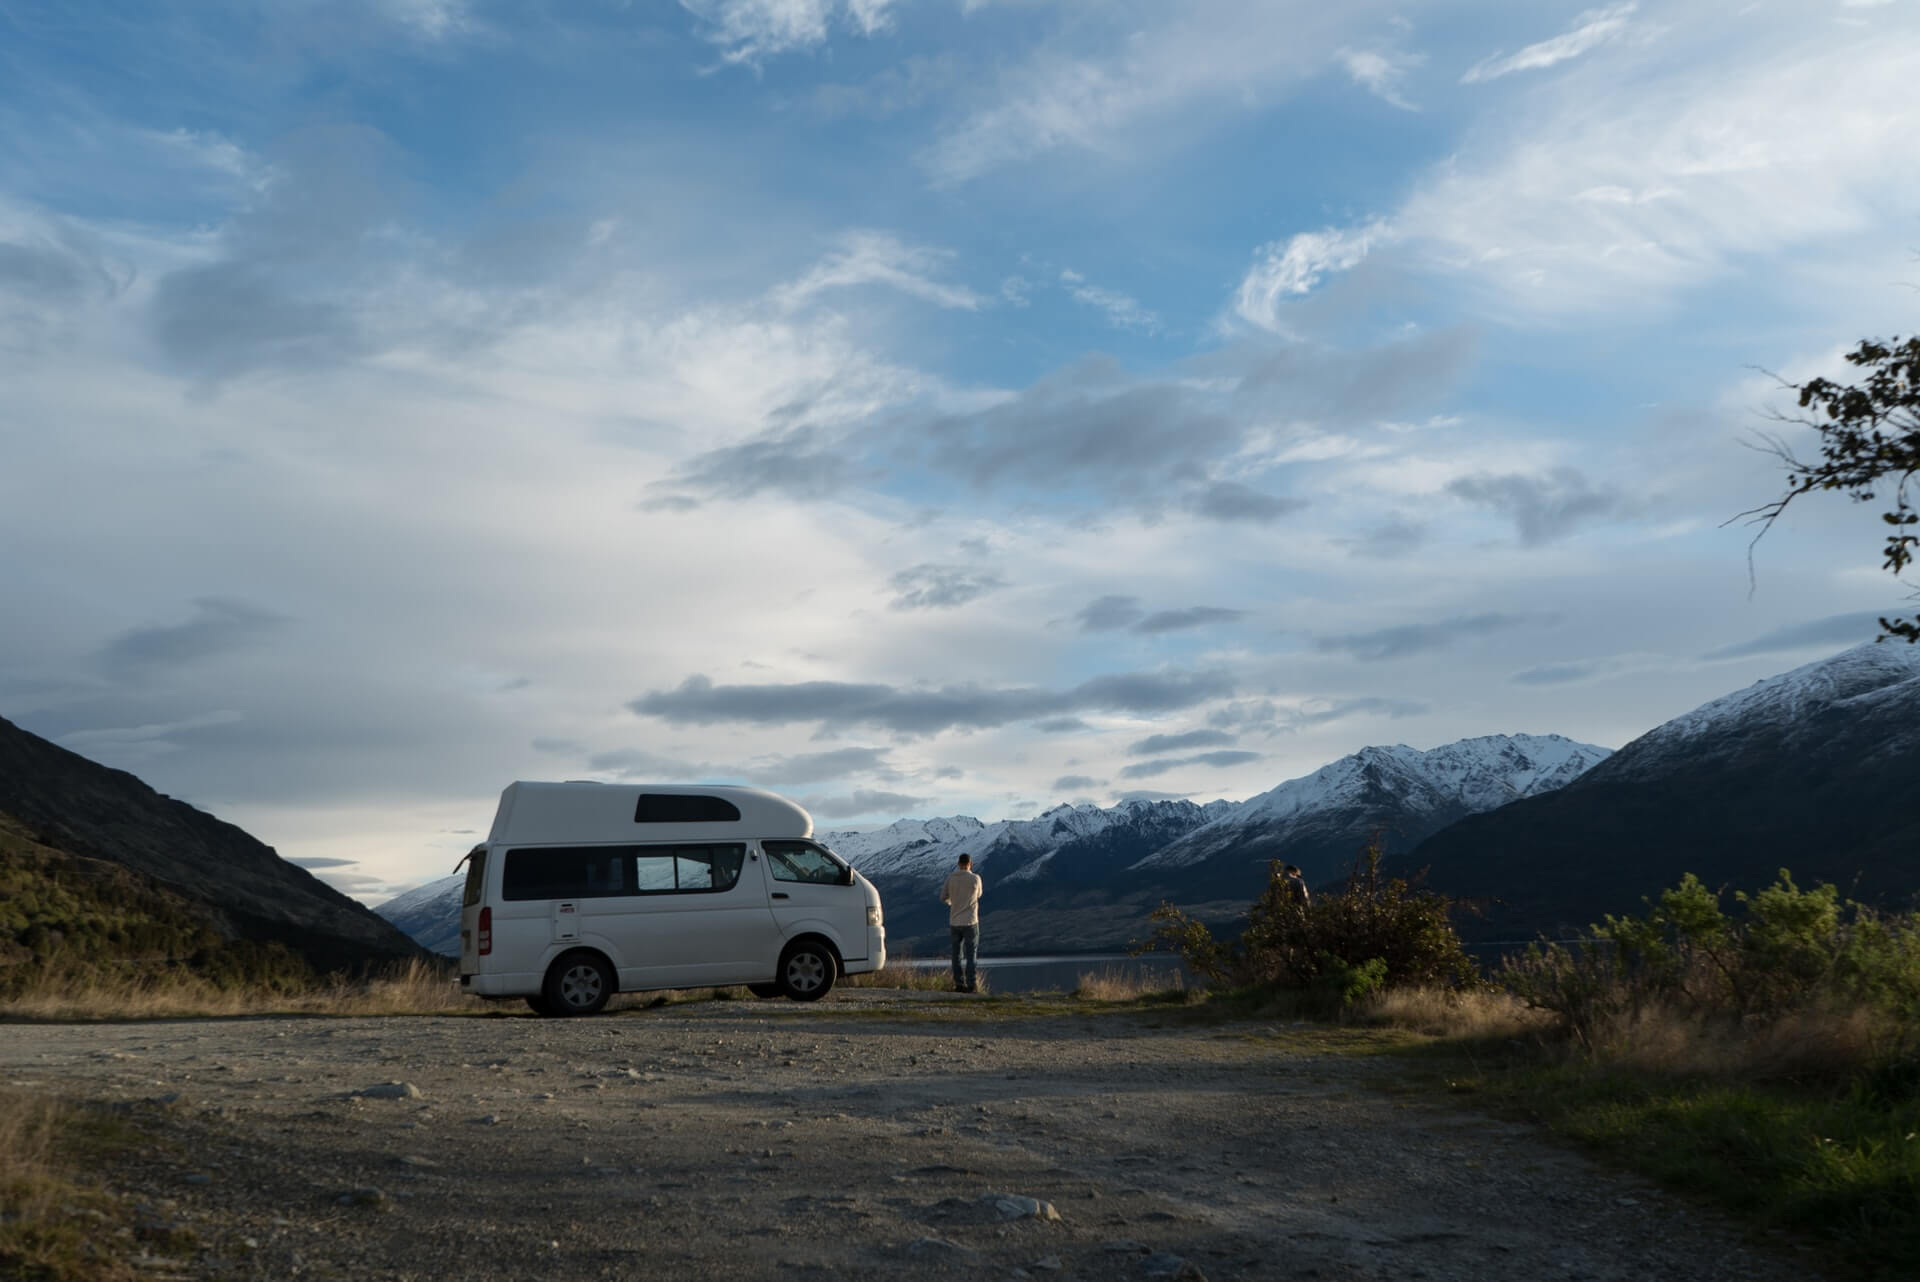 Van camping in New Zealand at a free campsite